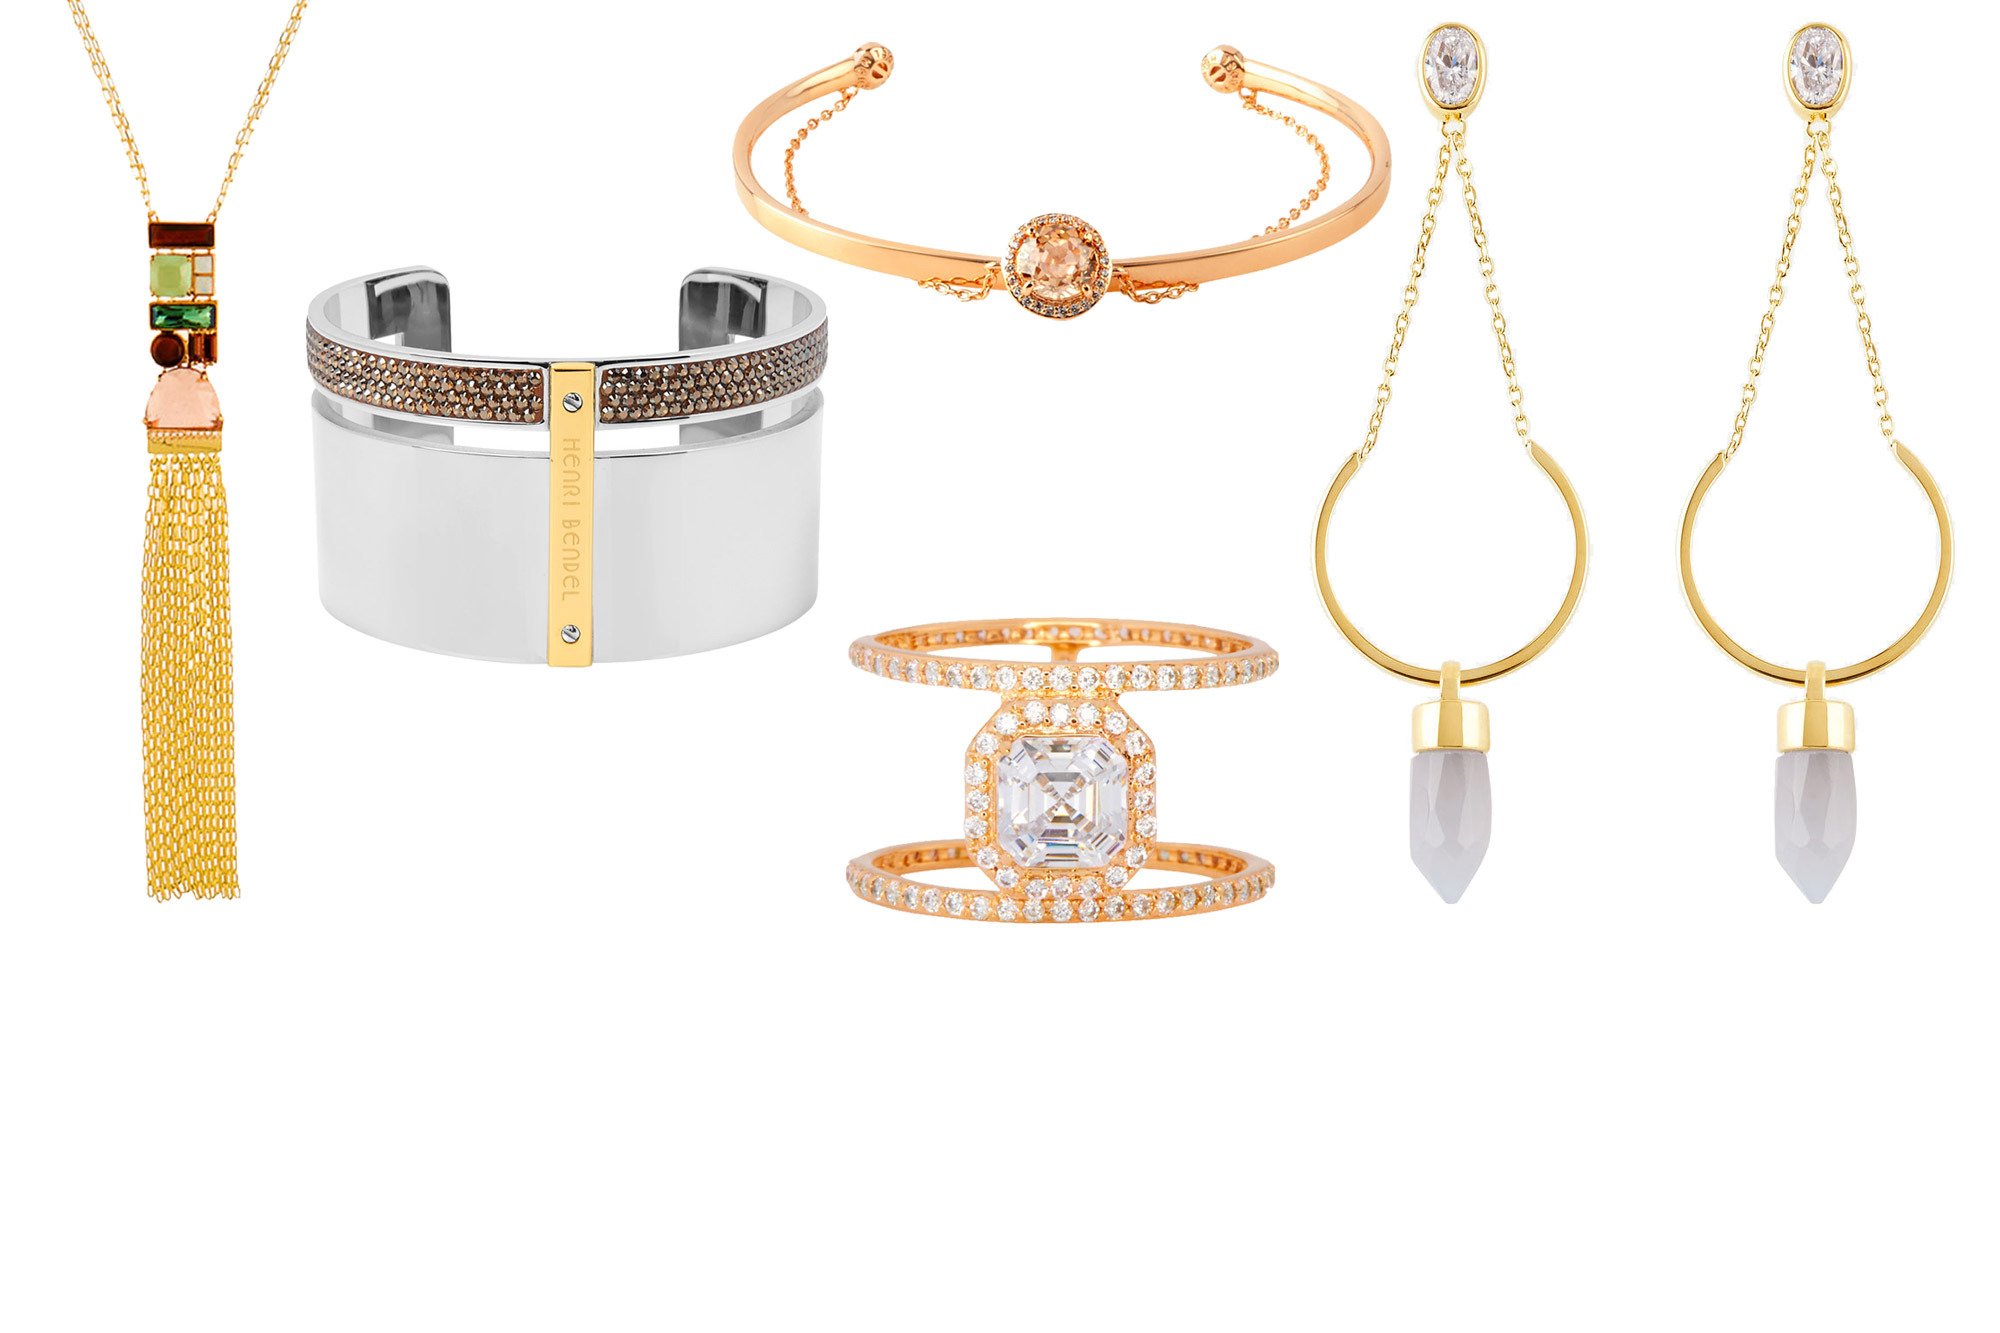 Henri Bendel Has Pretty Jewelry on Sale Right Now for Under $100